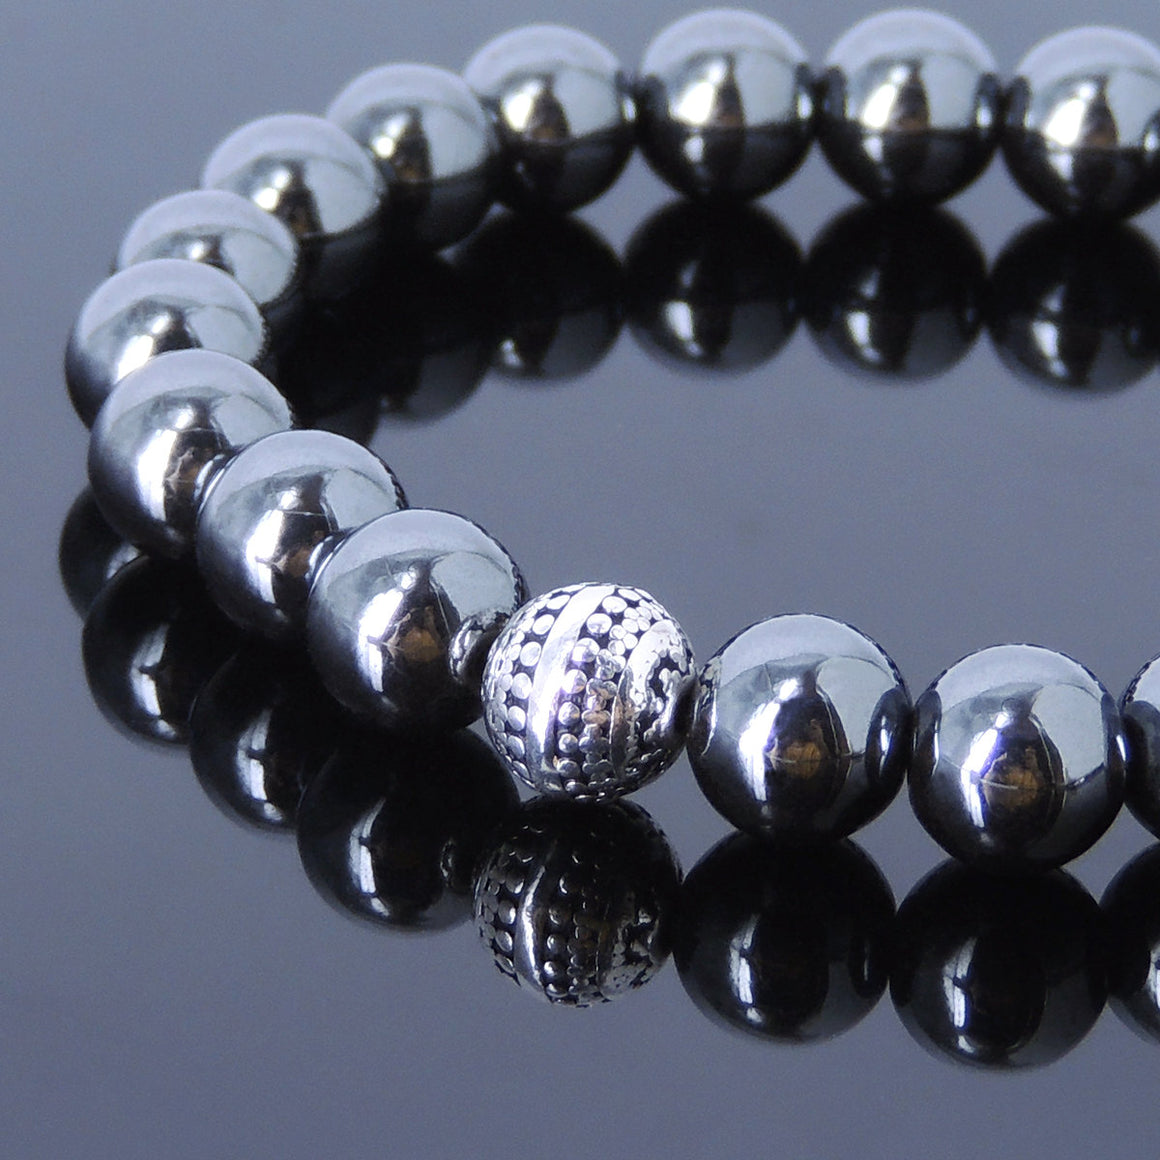 8mm Hematite Healing Gemstone Bracelet with S925 Sterling Silver Artisan Bead - Handmade by Gem & Silver BR457